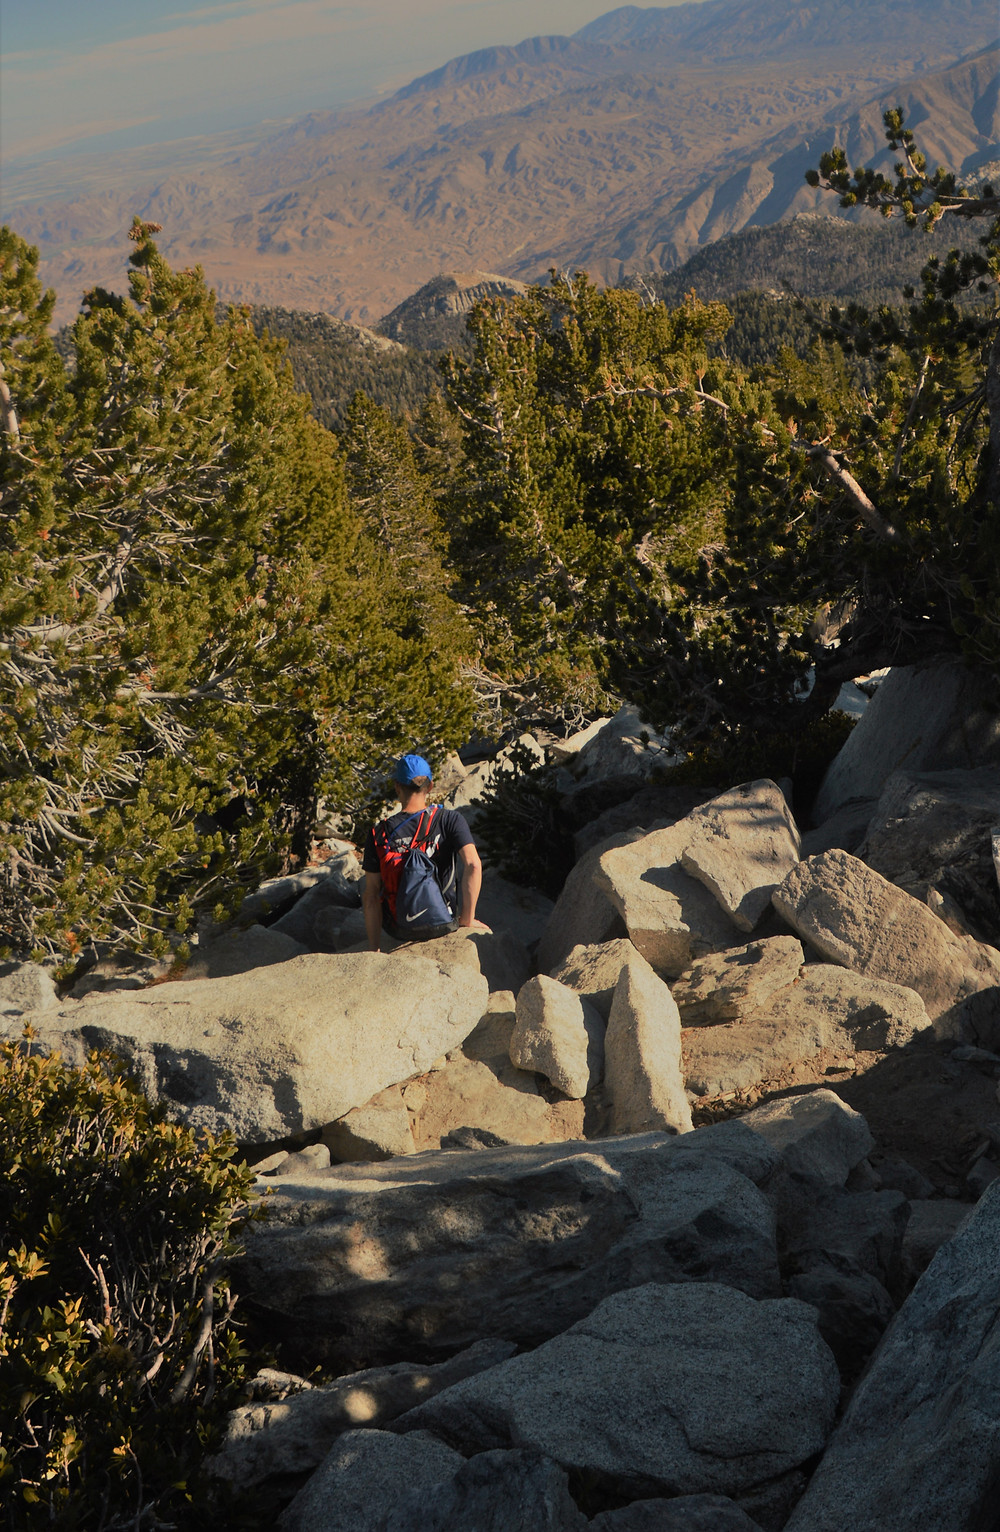 Class 2 or 3-ish scramble up a 200+ vertical foot section leading to San Jacinto summit